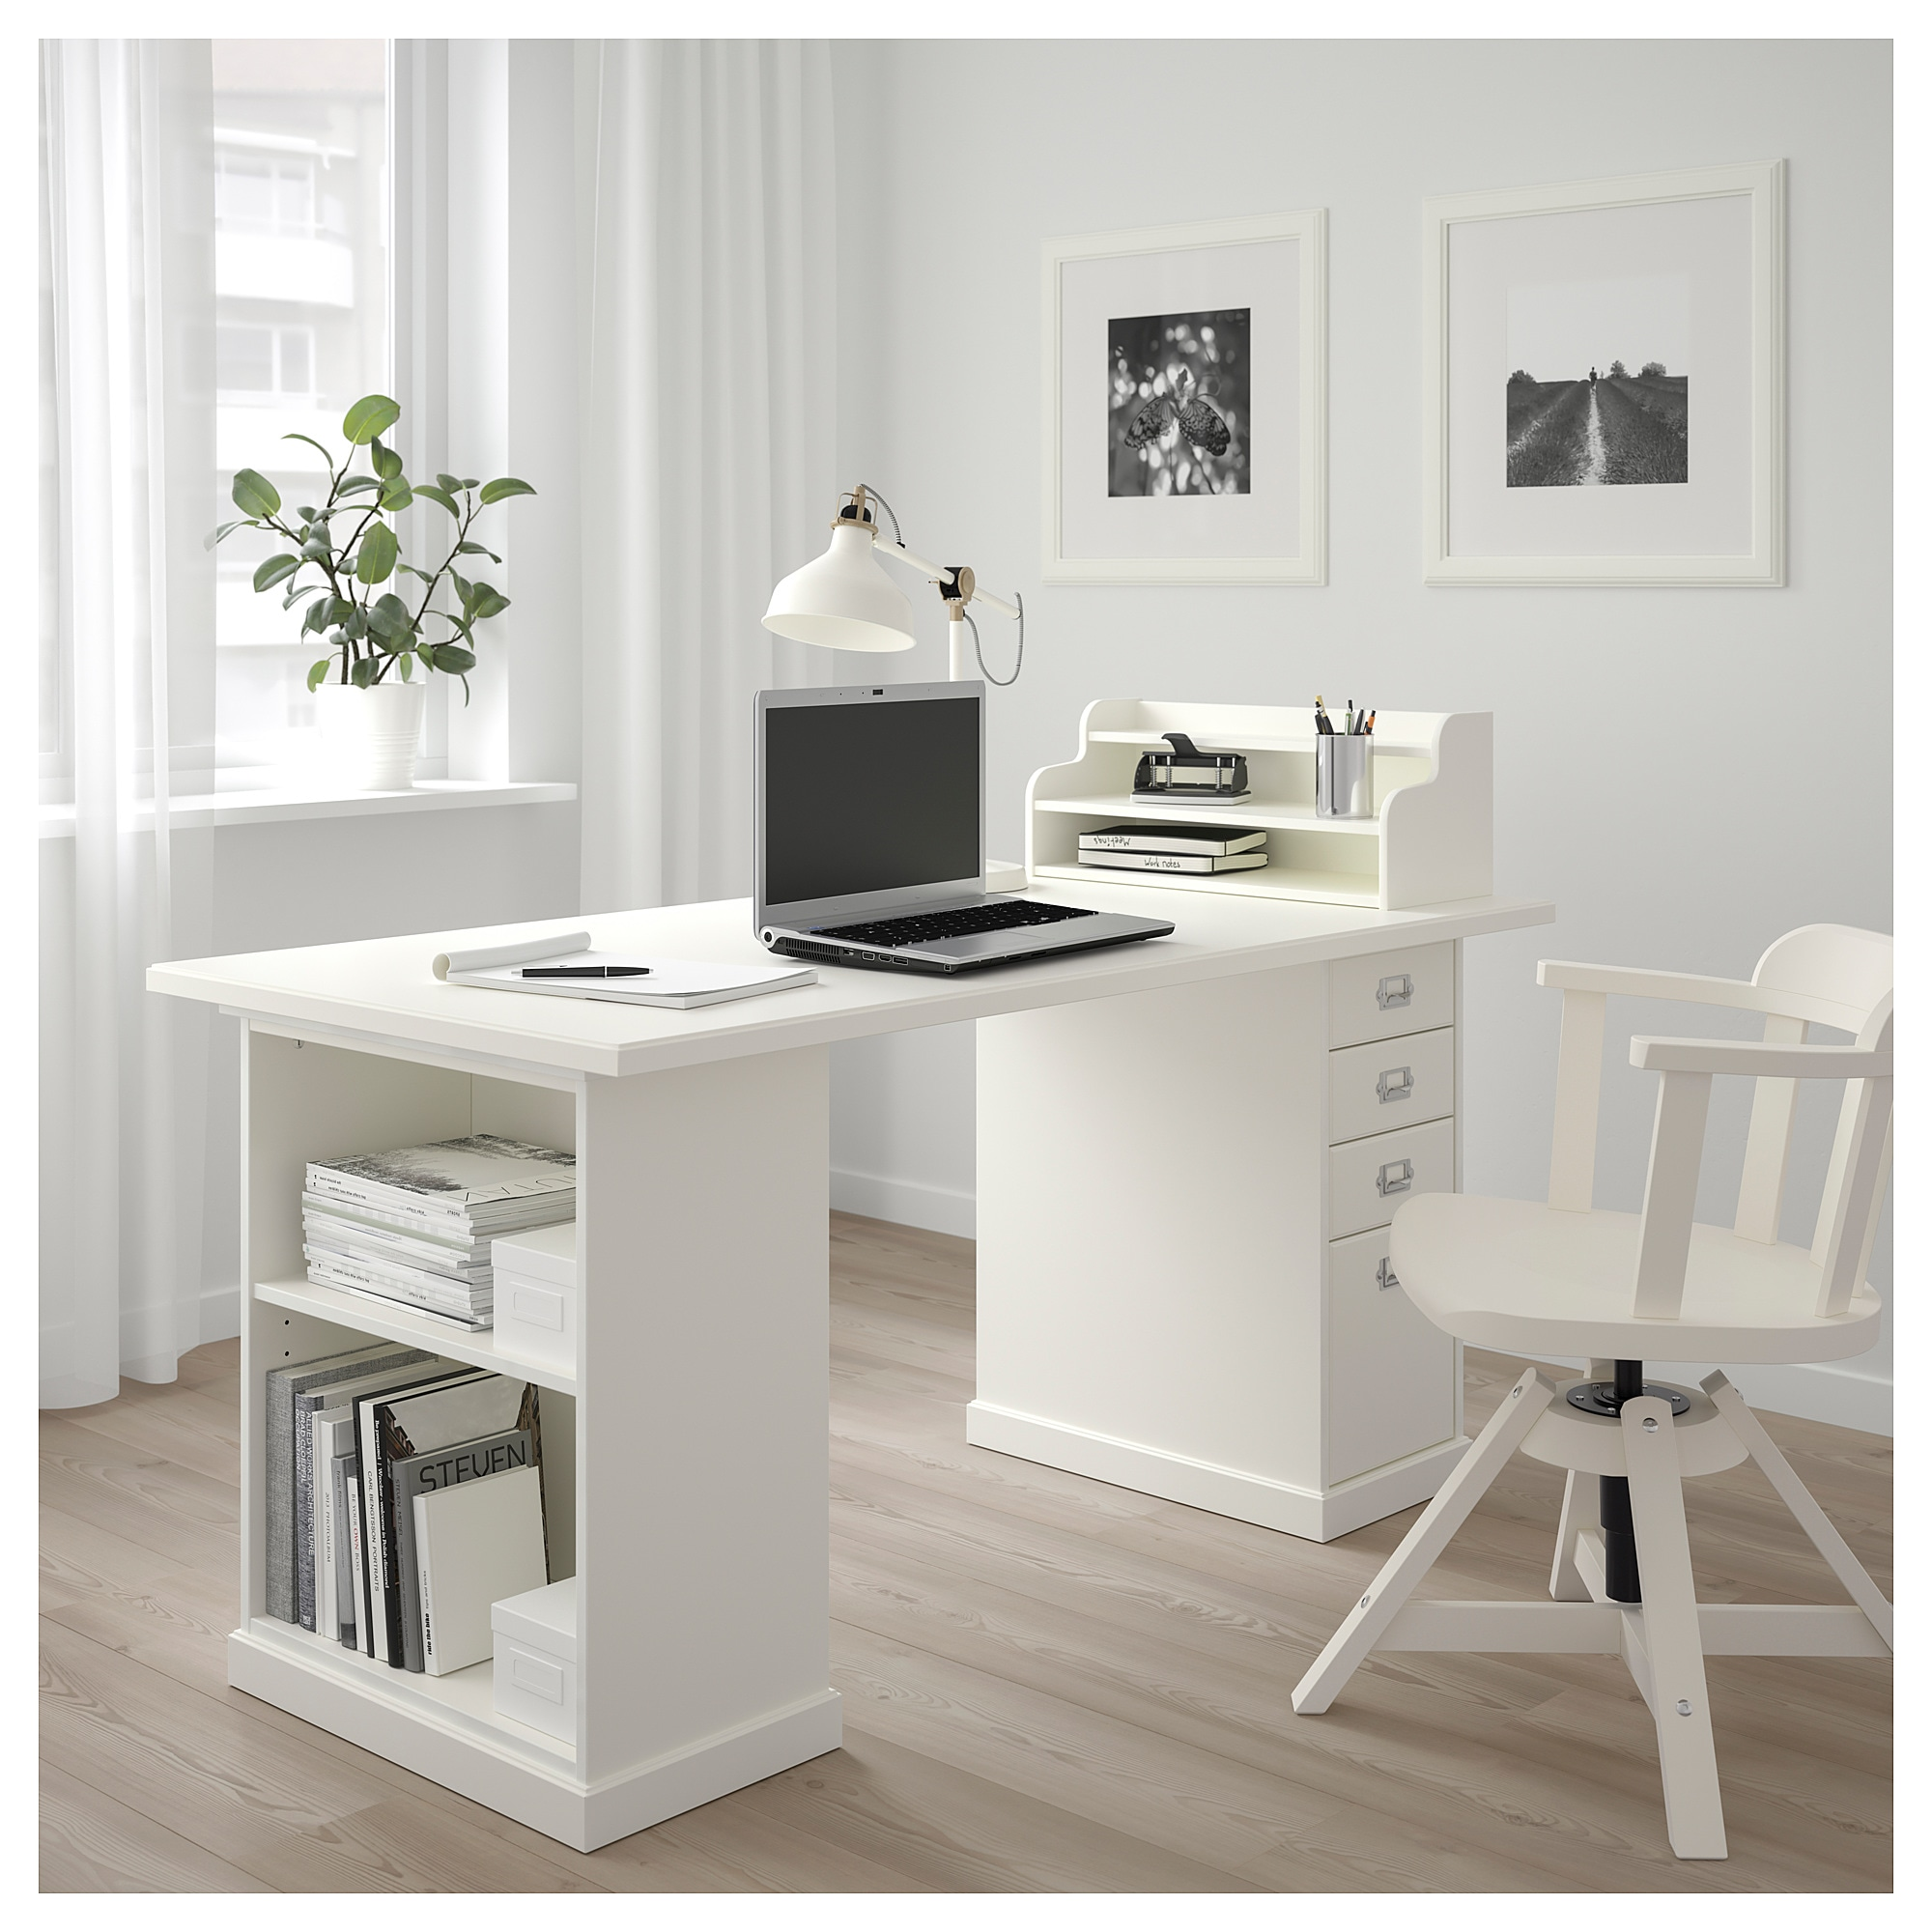 klimpen table ikea rh ikea com